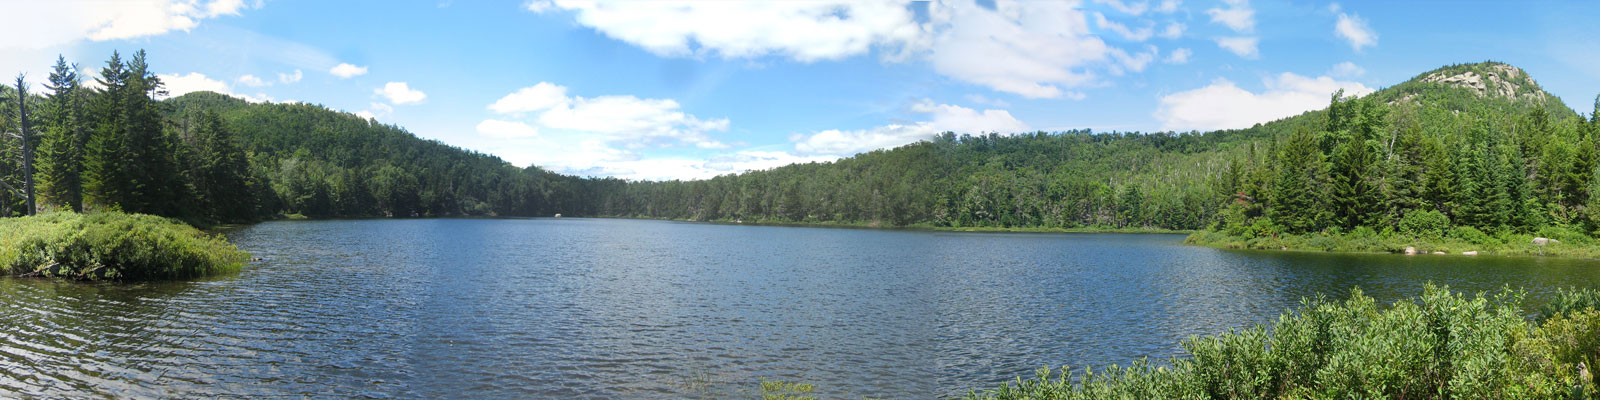 Peaked Mountain Pond in the Central Adirondack Region